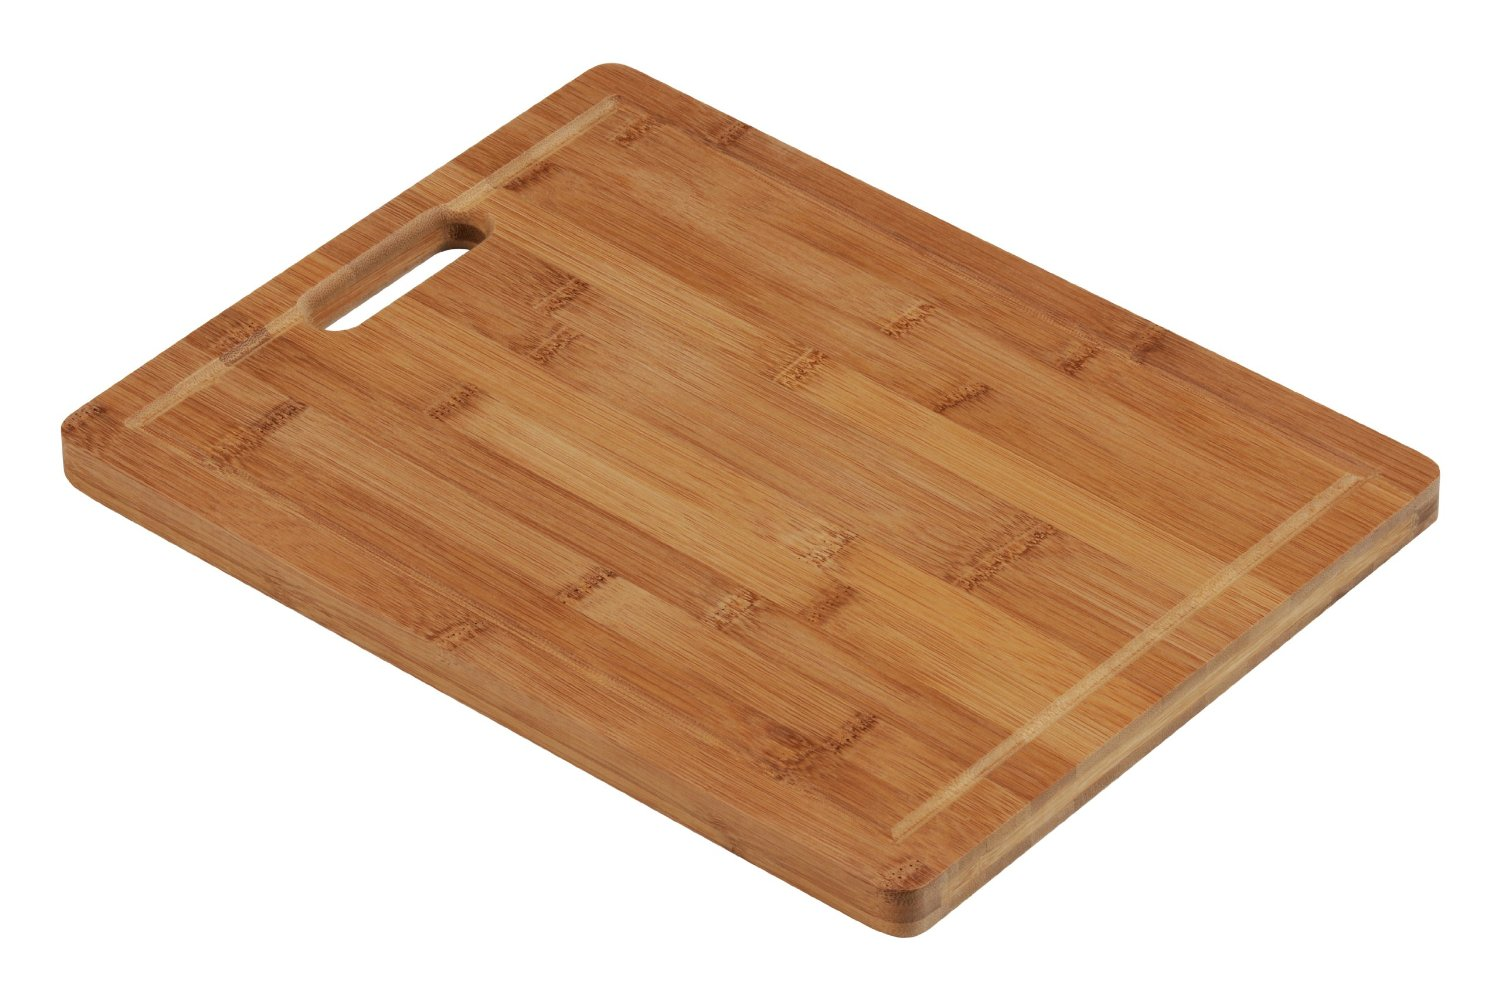 Bamboo Wood Cutting Board Kitchen Chopping Block with Removable Slide-Out Tray. Brand New. $ or Best Offer. Free Shipping. Sold. Thick End Grain Bamboo Wood Cutting Board/Kitchen Butcher Block - Heavy Duty. Brand New.